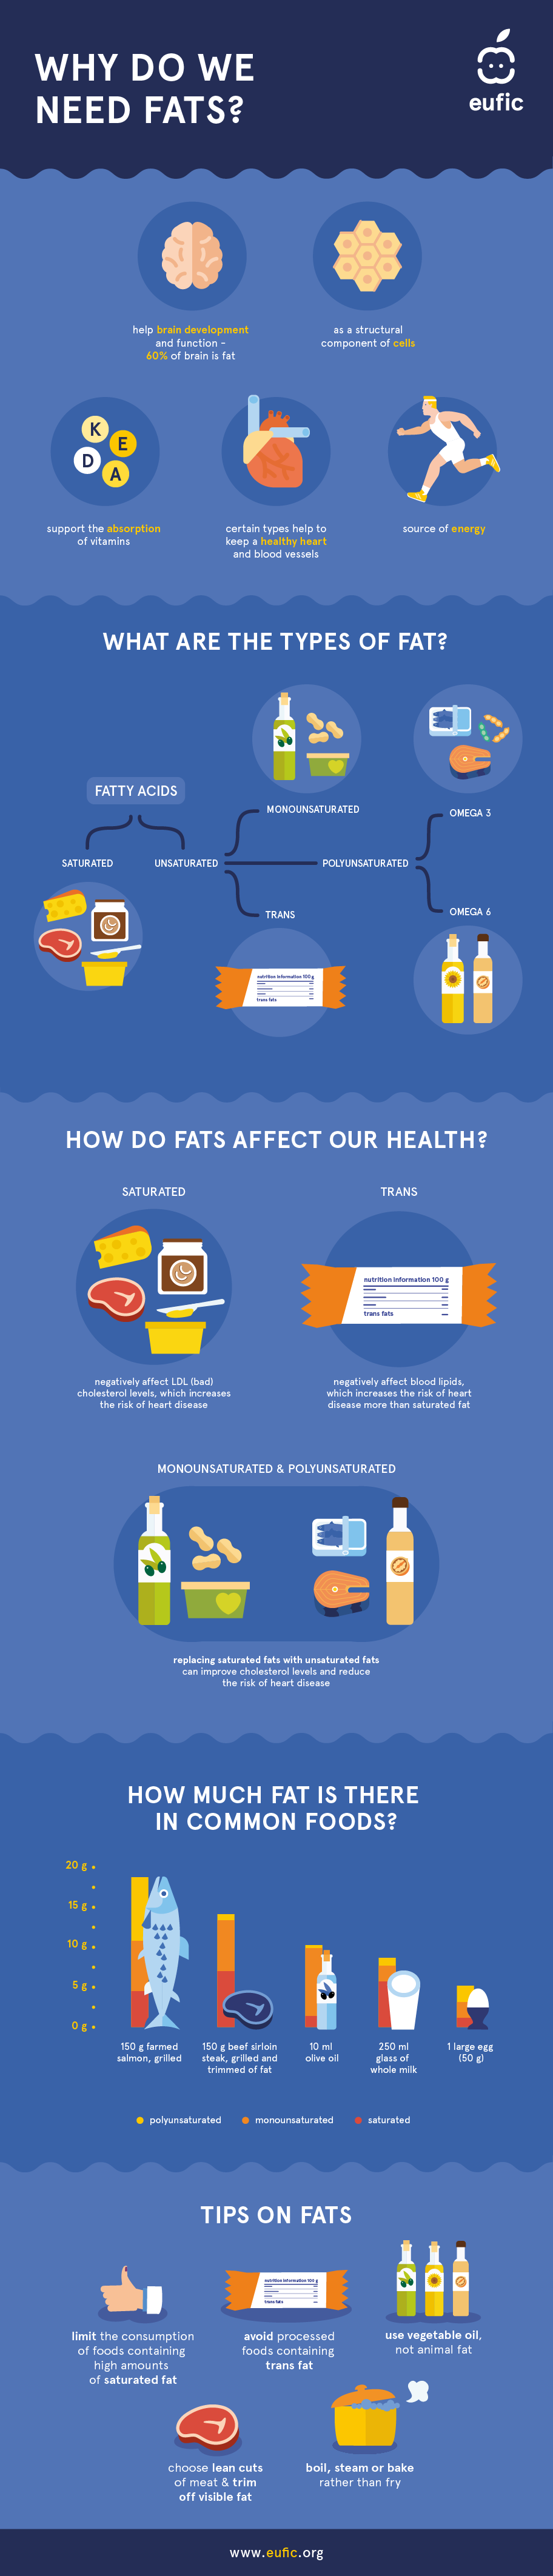 what do we need fat in our diet